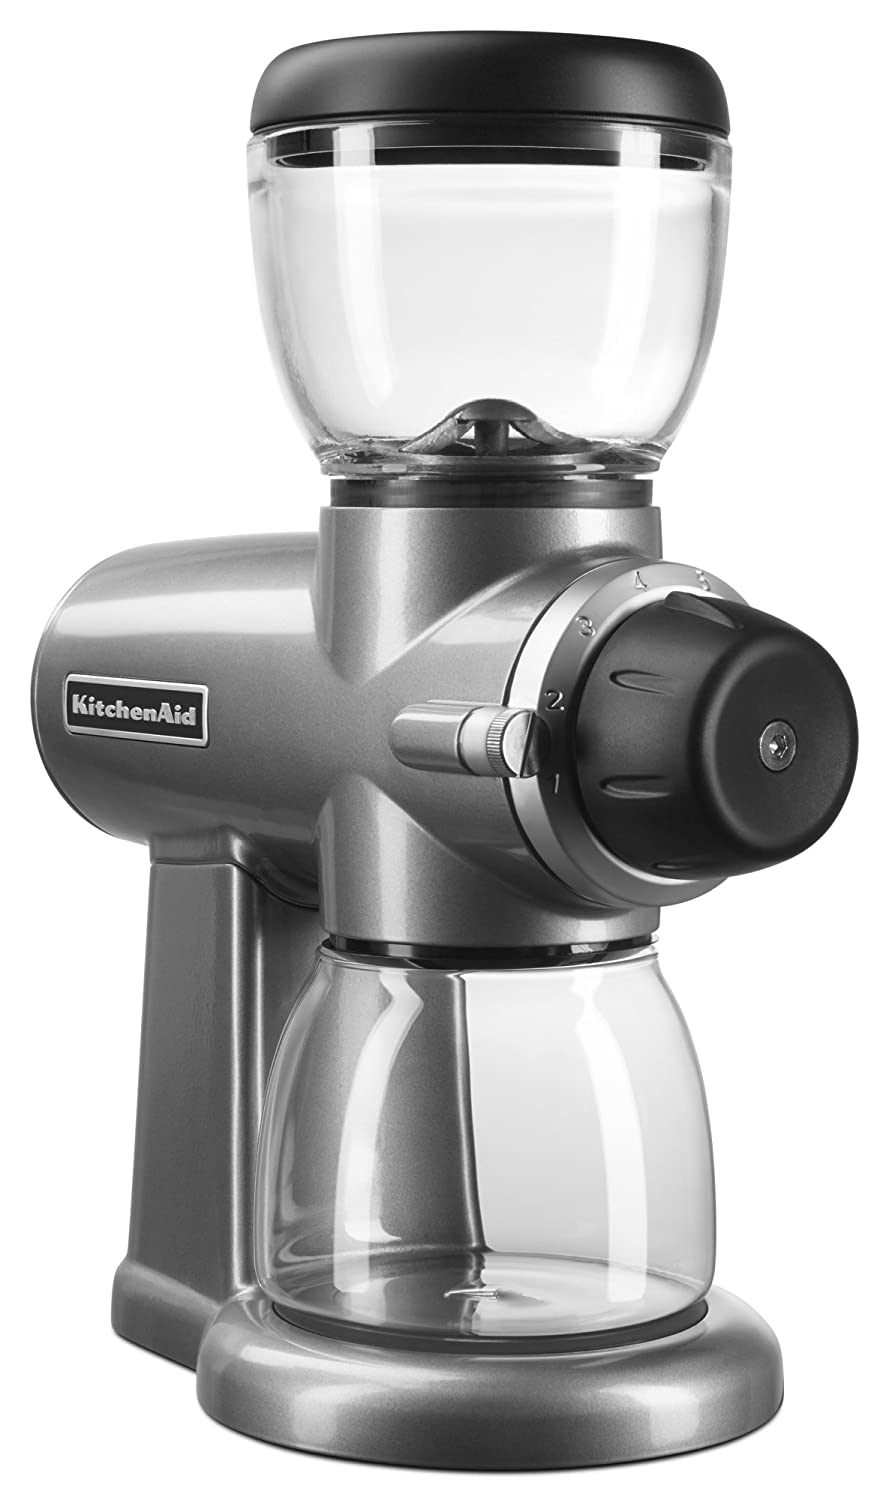 kitchenaid coffee grinder. amazon.com: kitchenaid kcg0702cu burr coffee grinder, contour silver: beauty kitchenaid grinder u